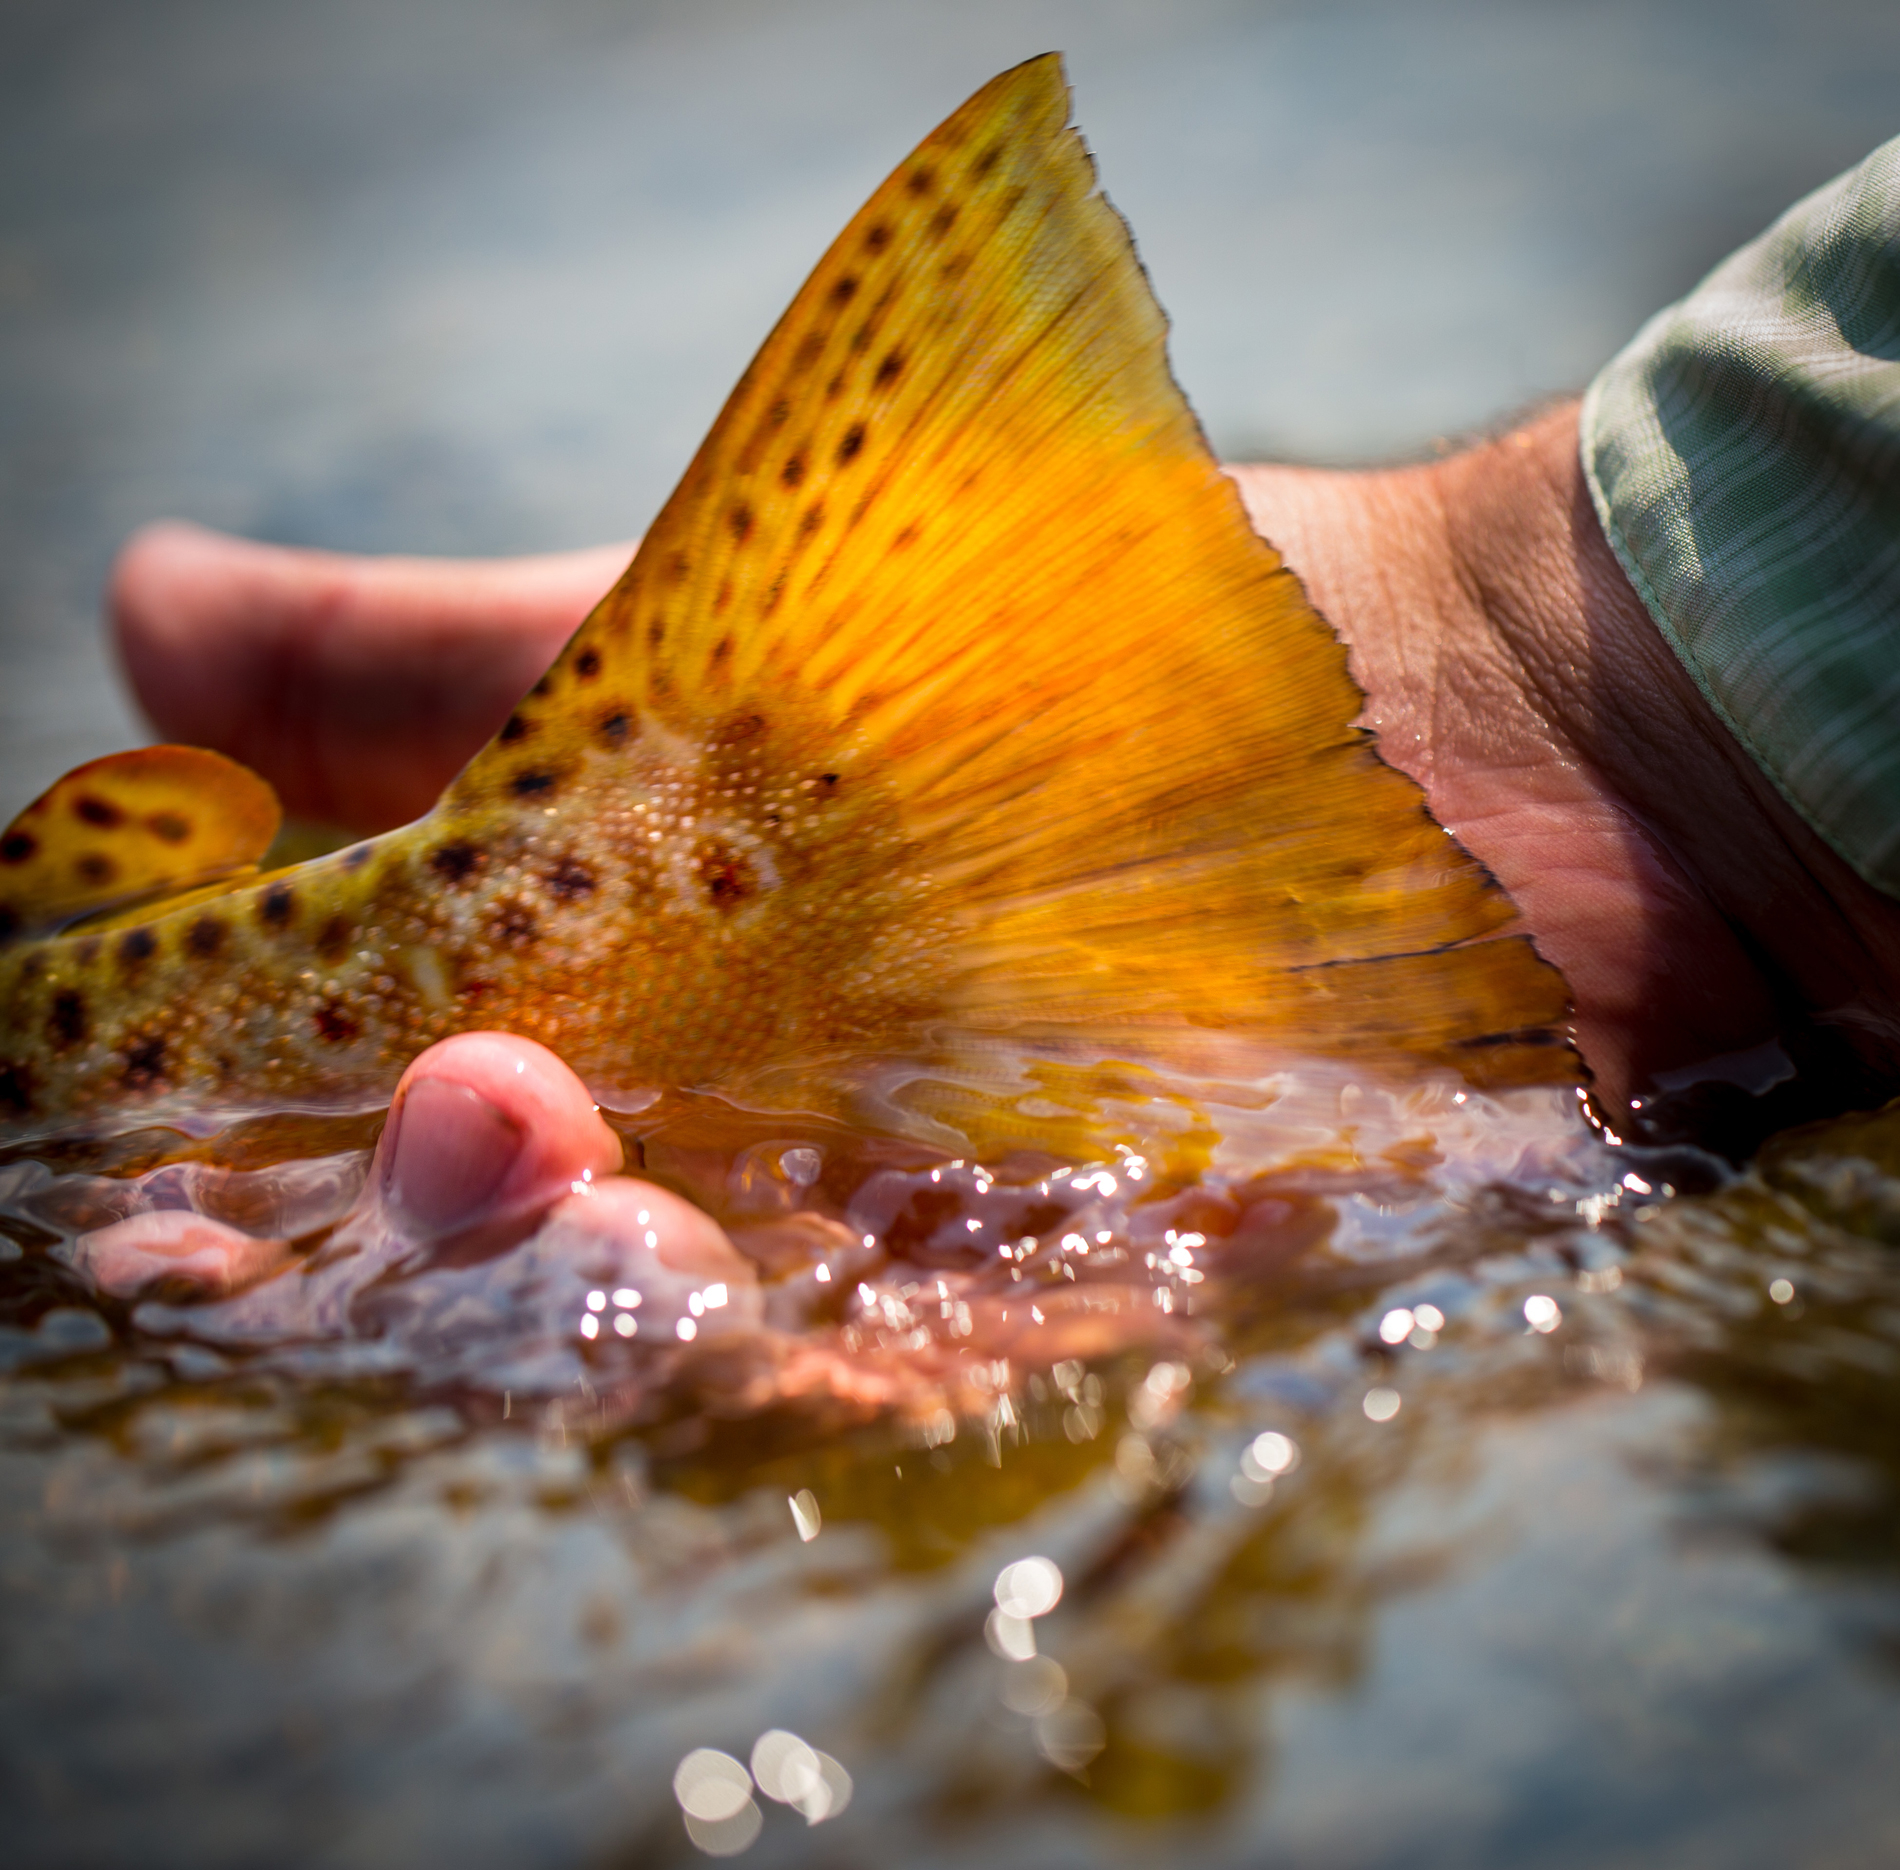 Had this image of the tail of a Clark Fork River brown trout been a bit sharper, there's a good chance it would have walked away with one of this year's prizes. What it lacks in sharpness, however, was countered well enough by good composition and brilliant color to land it amongst many of the judges top 10.